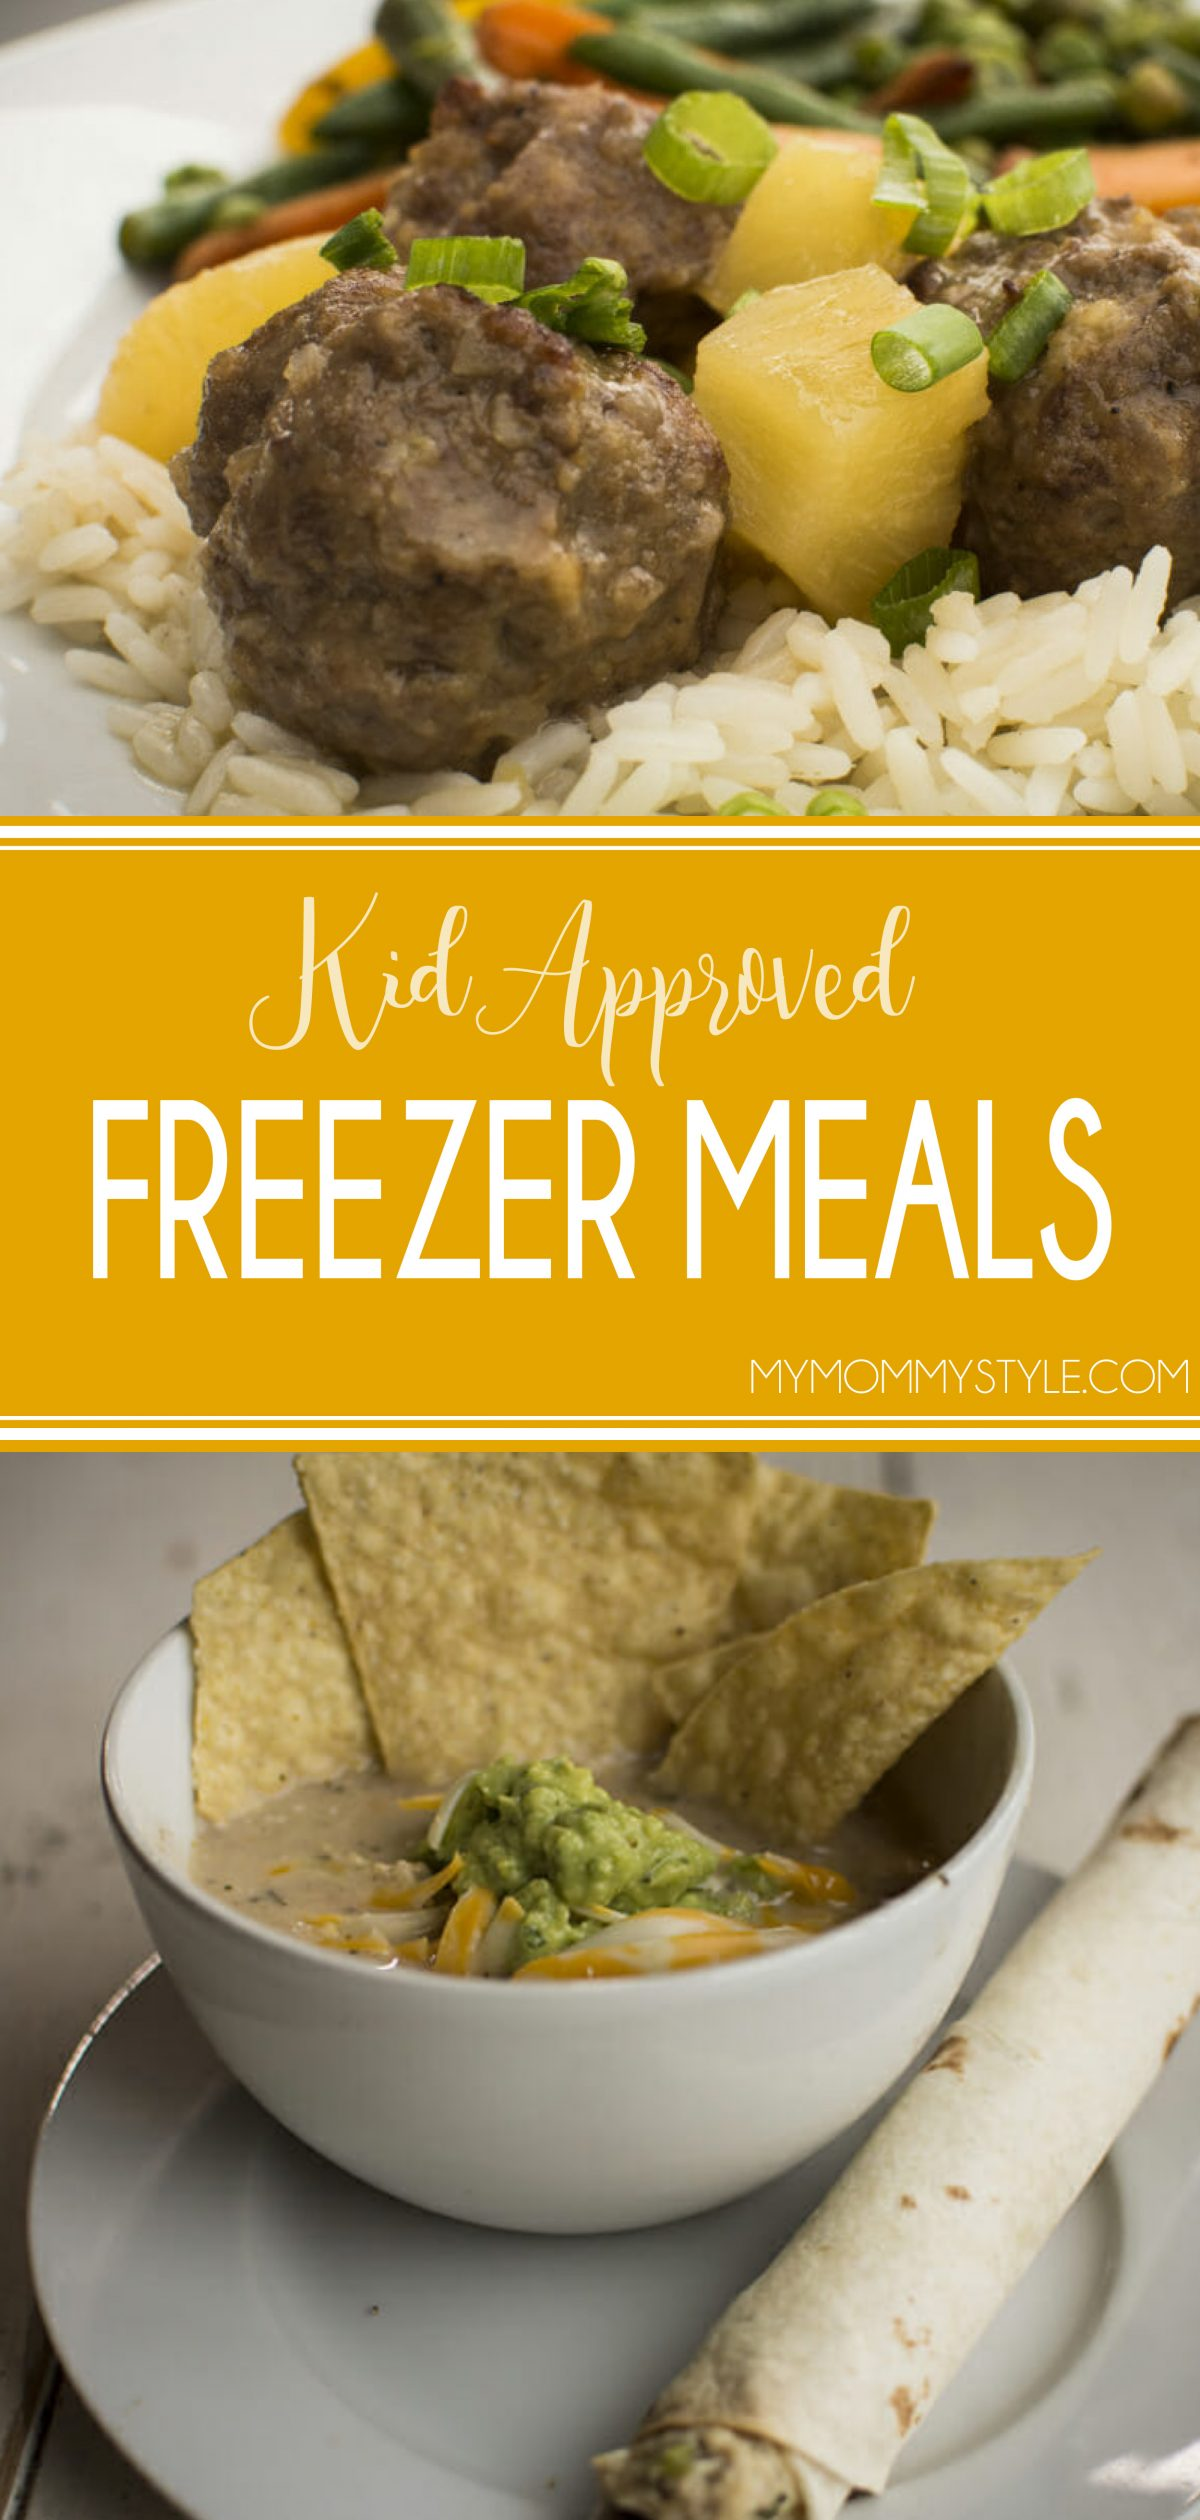 These 4 freezer meal recipes are all kid approved and will be a life-saver during the busy Back to School nights. via @mymommystyle